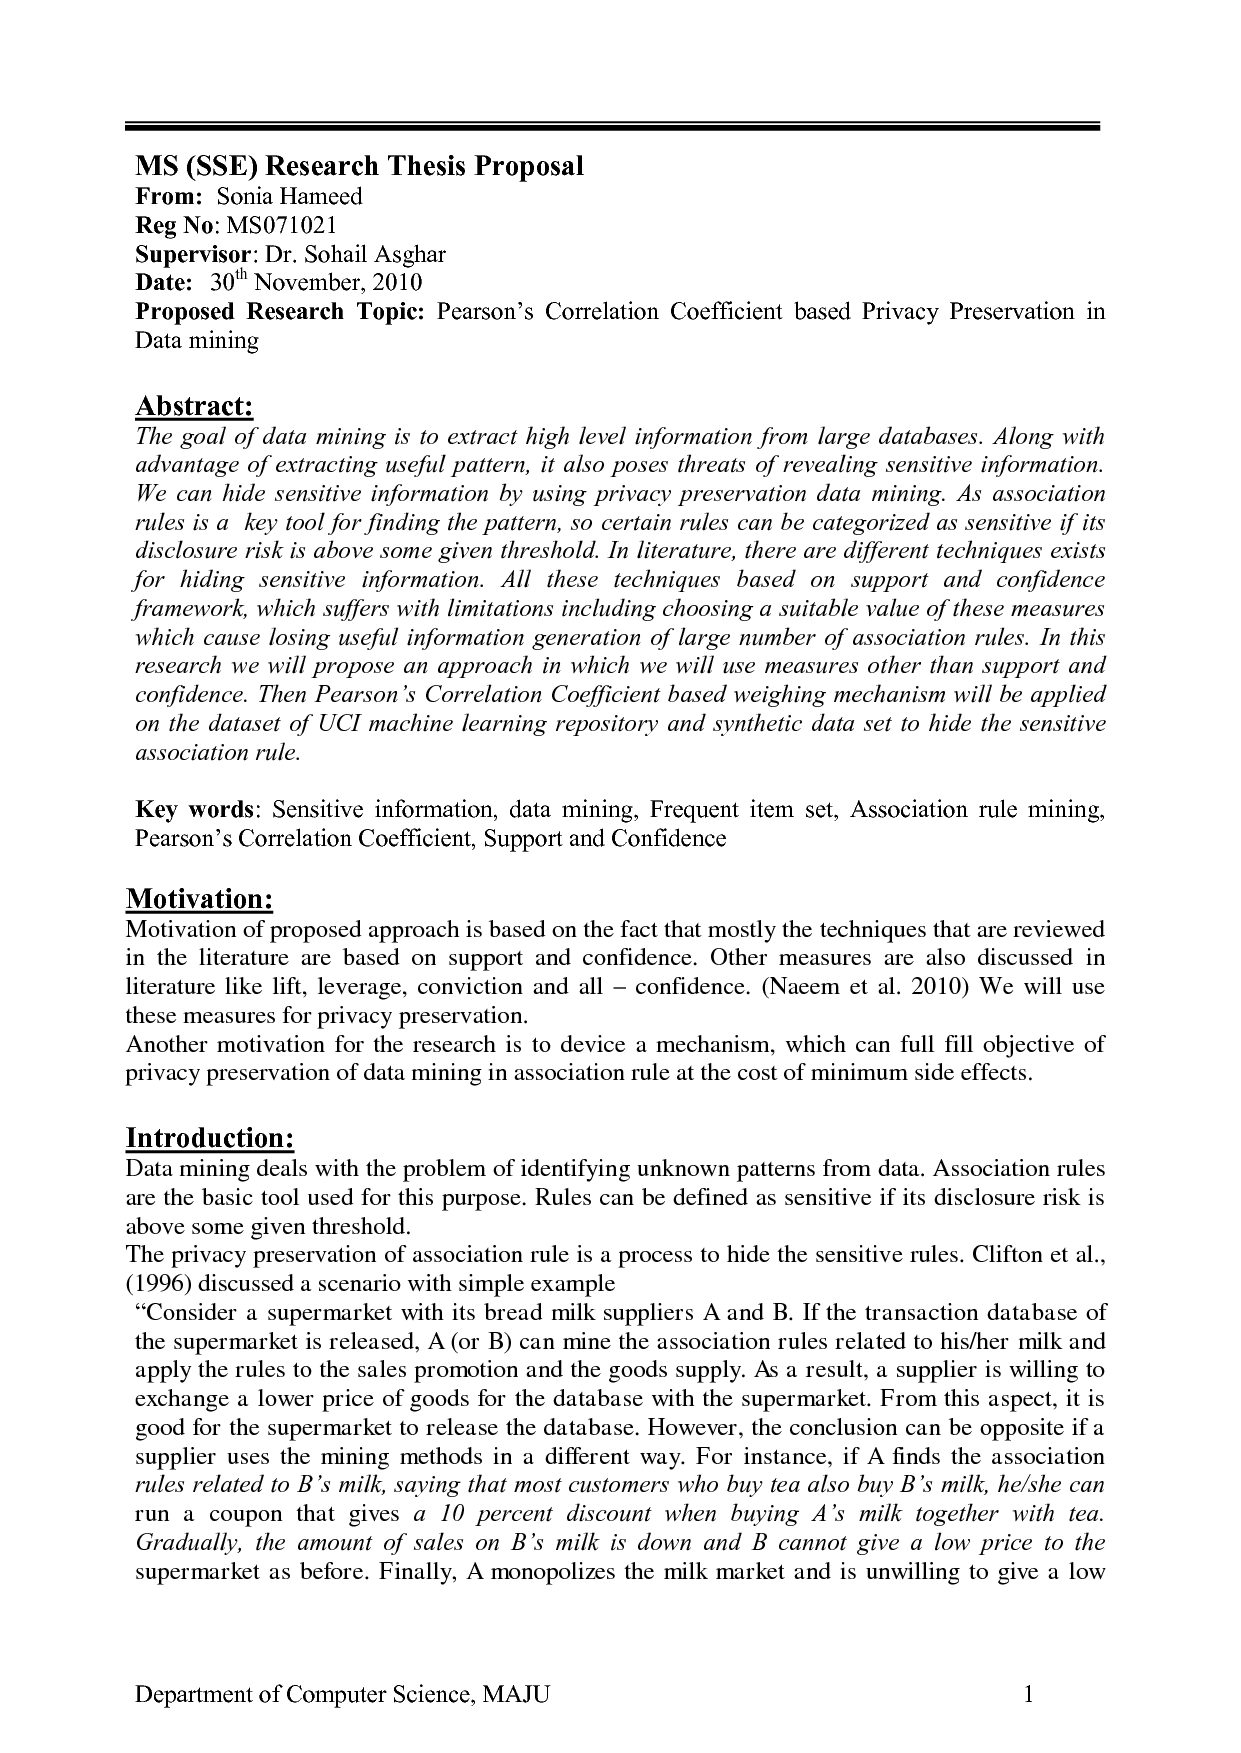 project dissertation thesis Depending on the school, or the level at which you are studying, longer assignments may be called a dissertation, a research project, a thesis or a 'long essay' longer assignments are usually the output of an independent research project that involves some generating or working with primary data data collection may be.